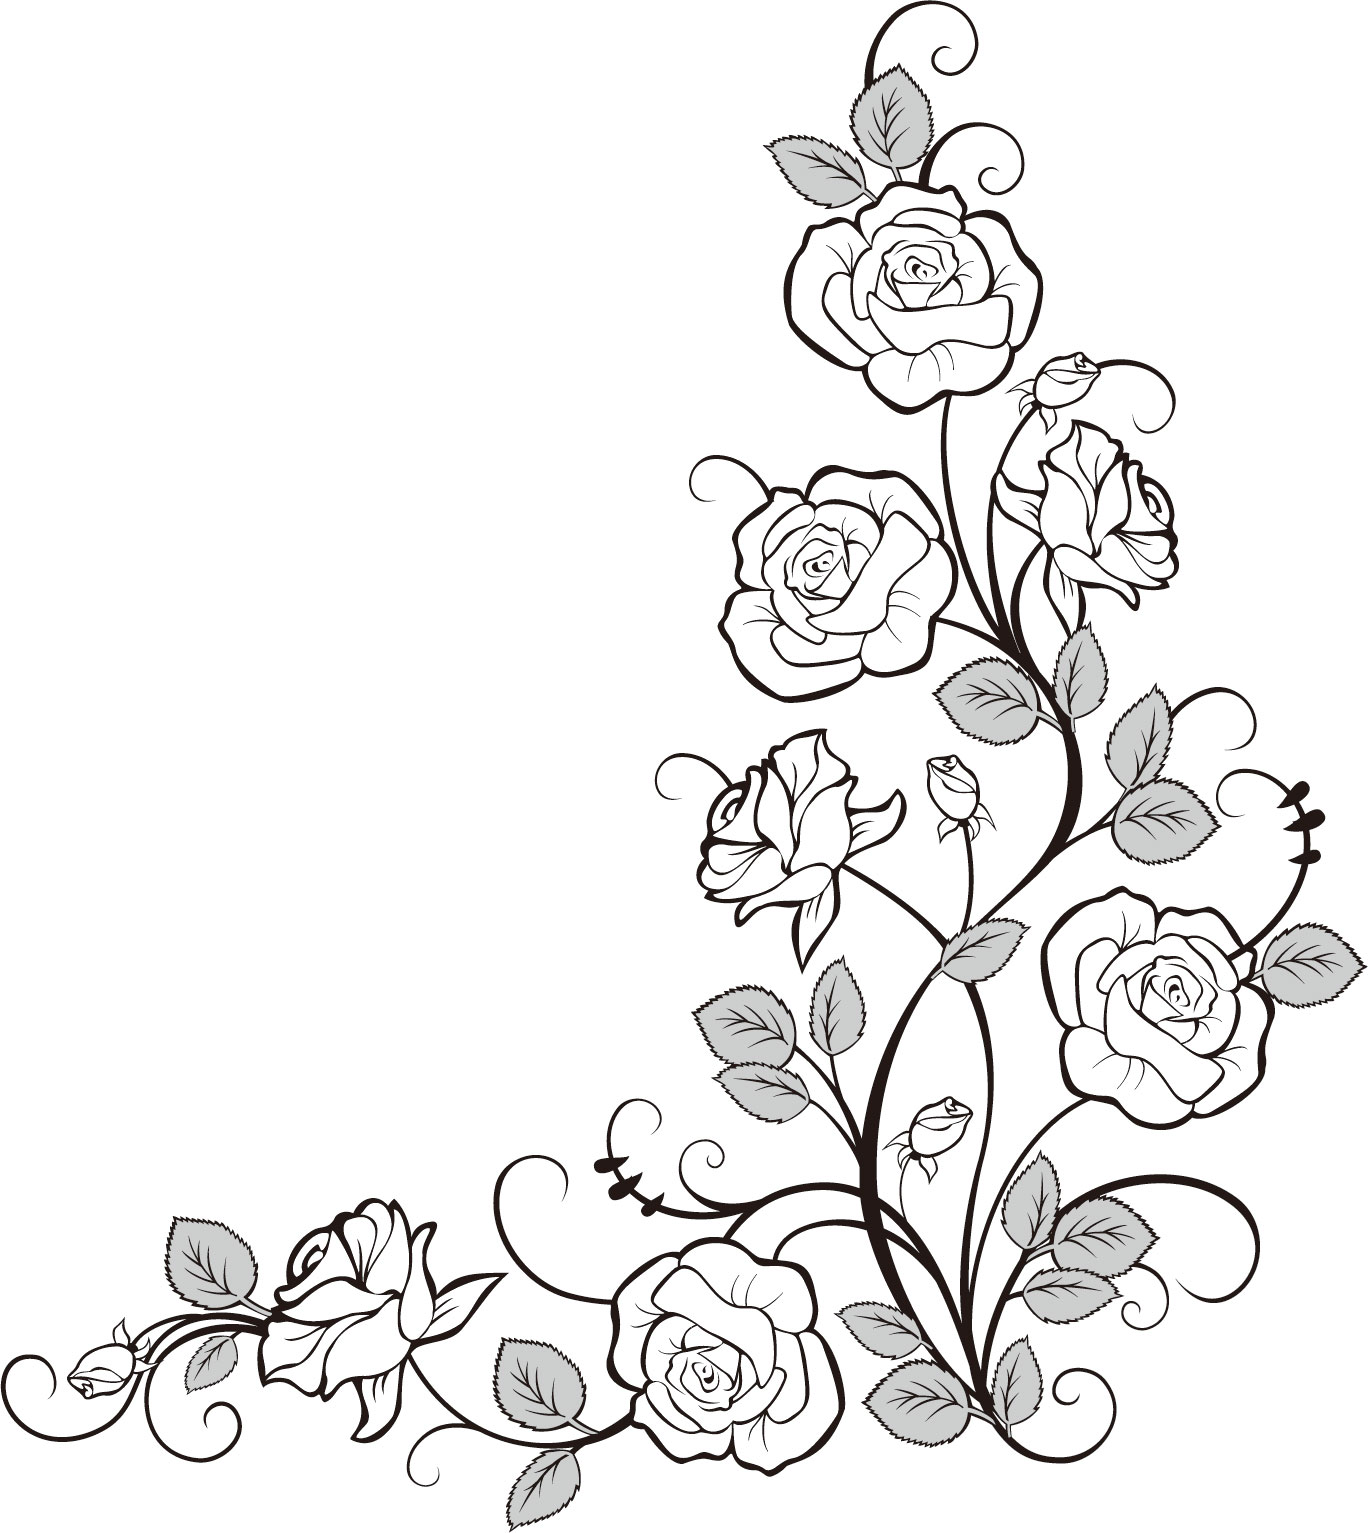 Sketches Of Ivy Vines Coloring Pages